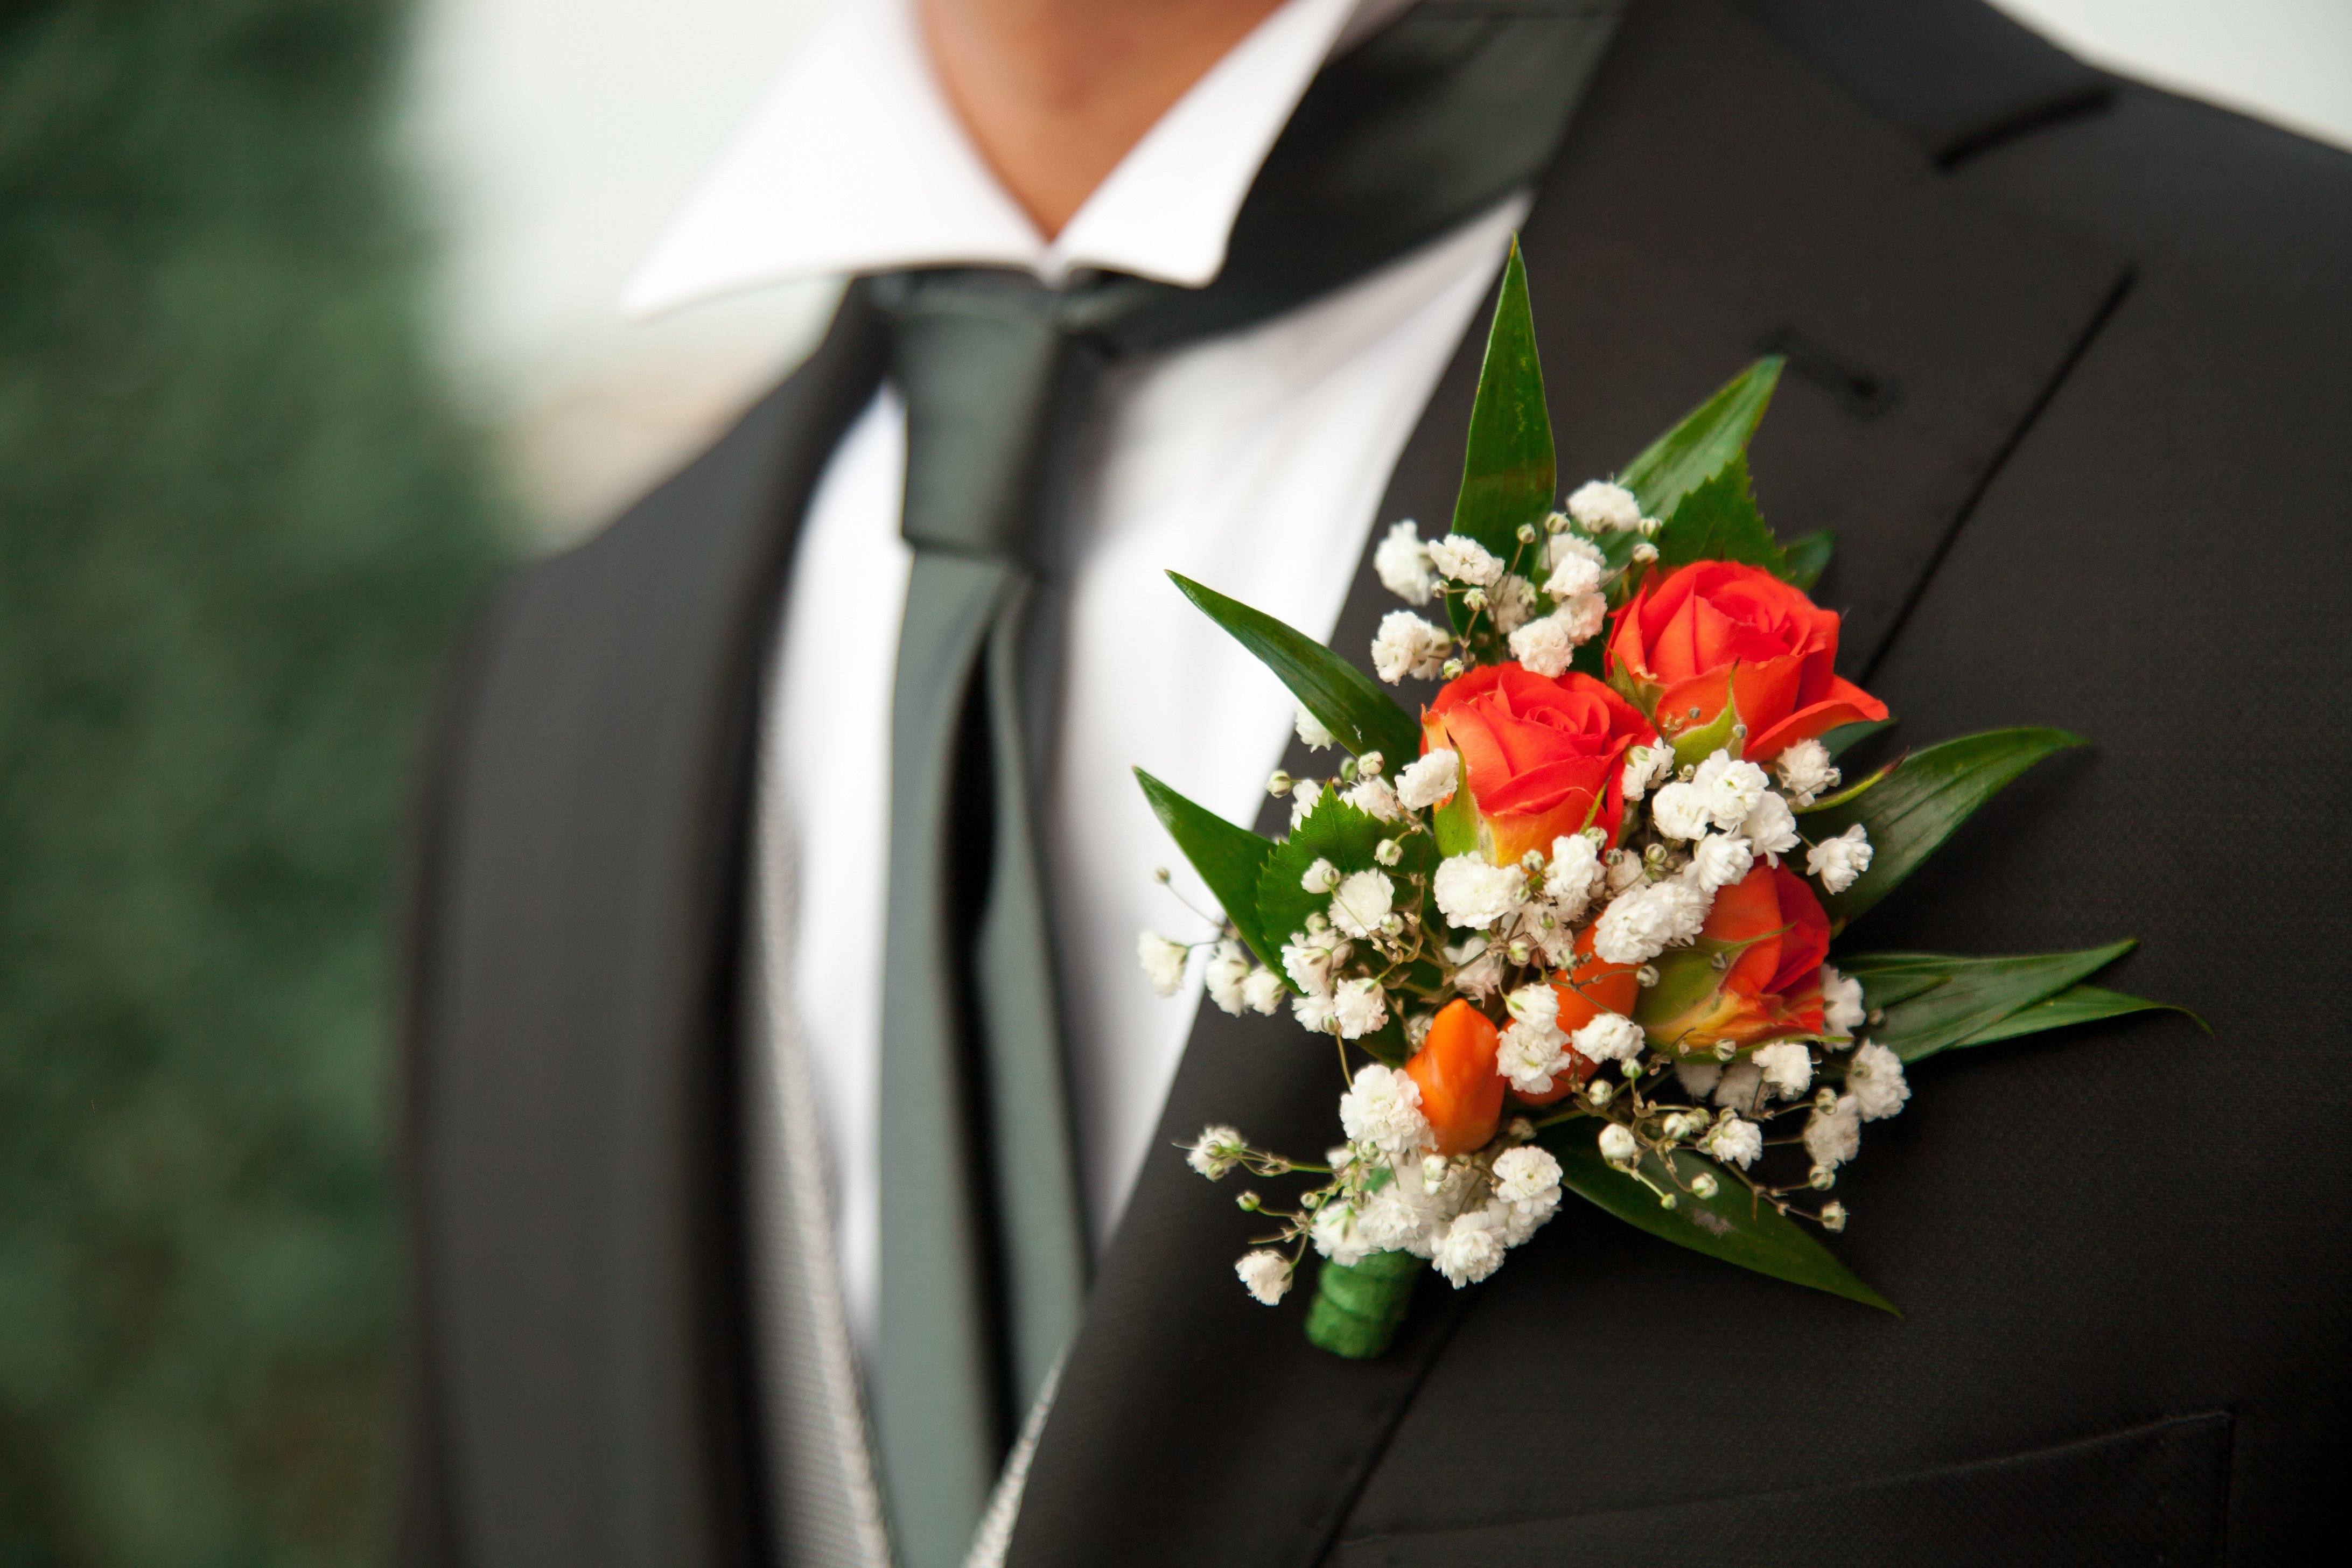 Make Your Own Diy Boutonnière Making For The Groom Is A Great Way To Add Personal Touch Wedding